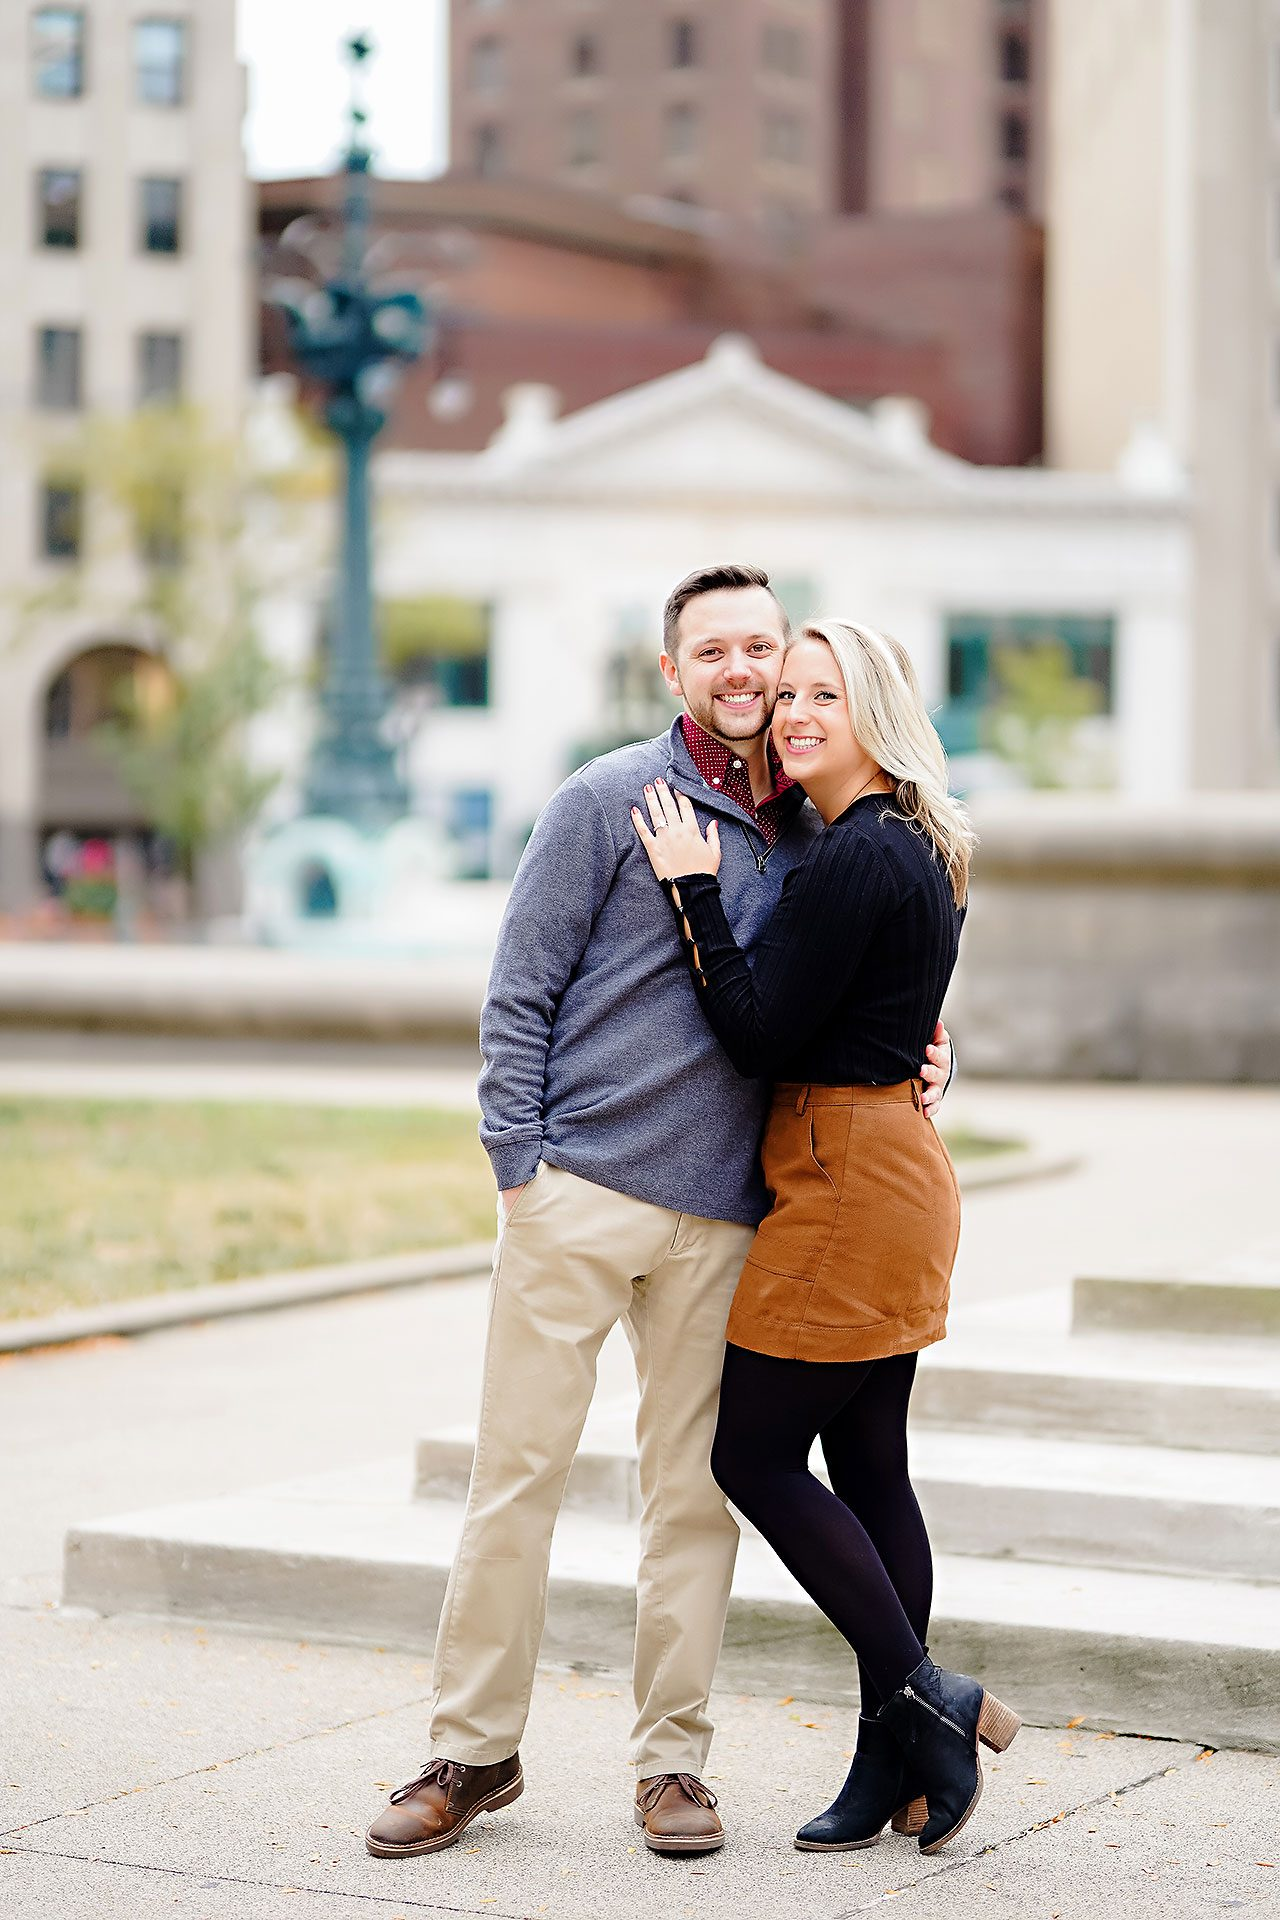 Kristen Jonny Indianapolis Downtown Engagement Session 111